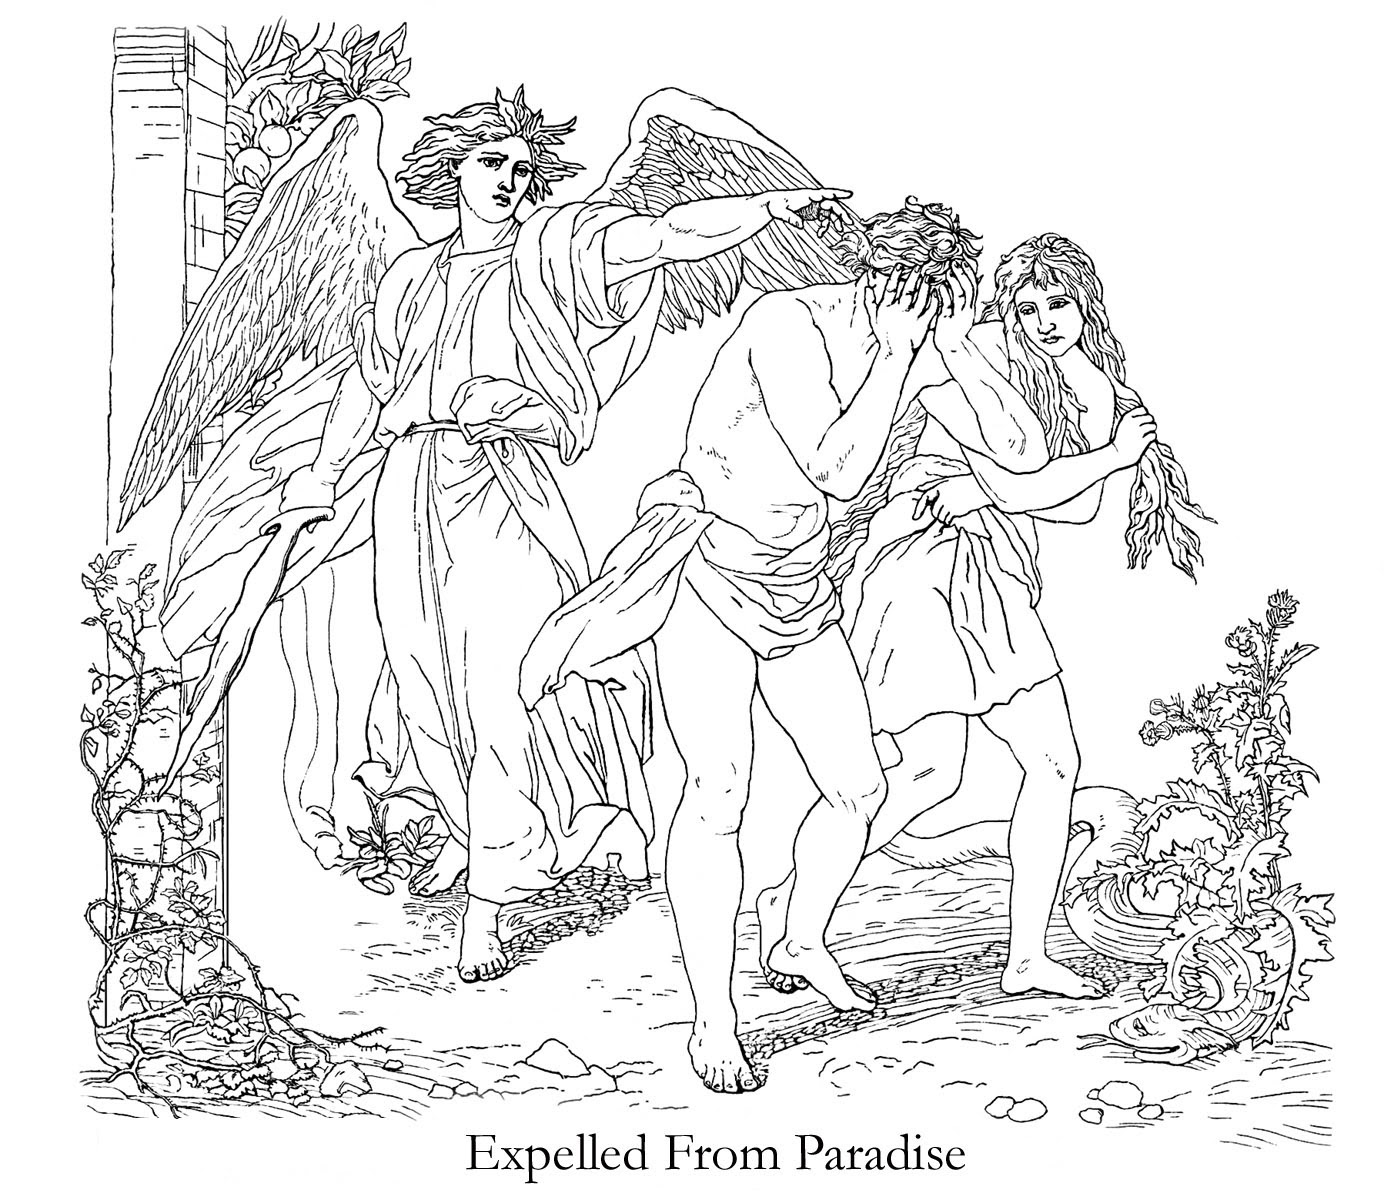 Adam and Eve Coloring Pages   Bible coloring pages, Coloring pages ...   1200x1394